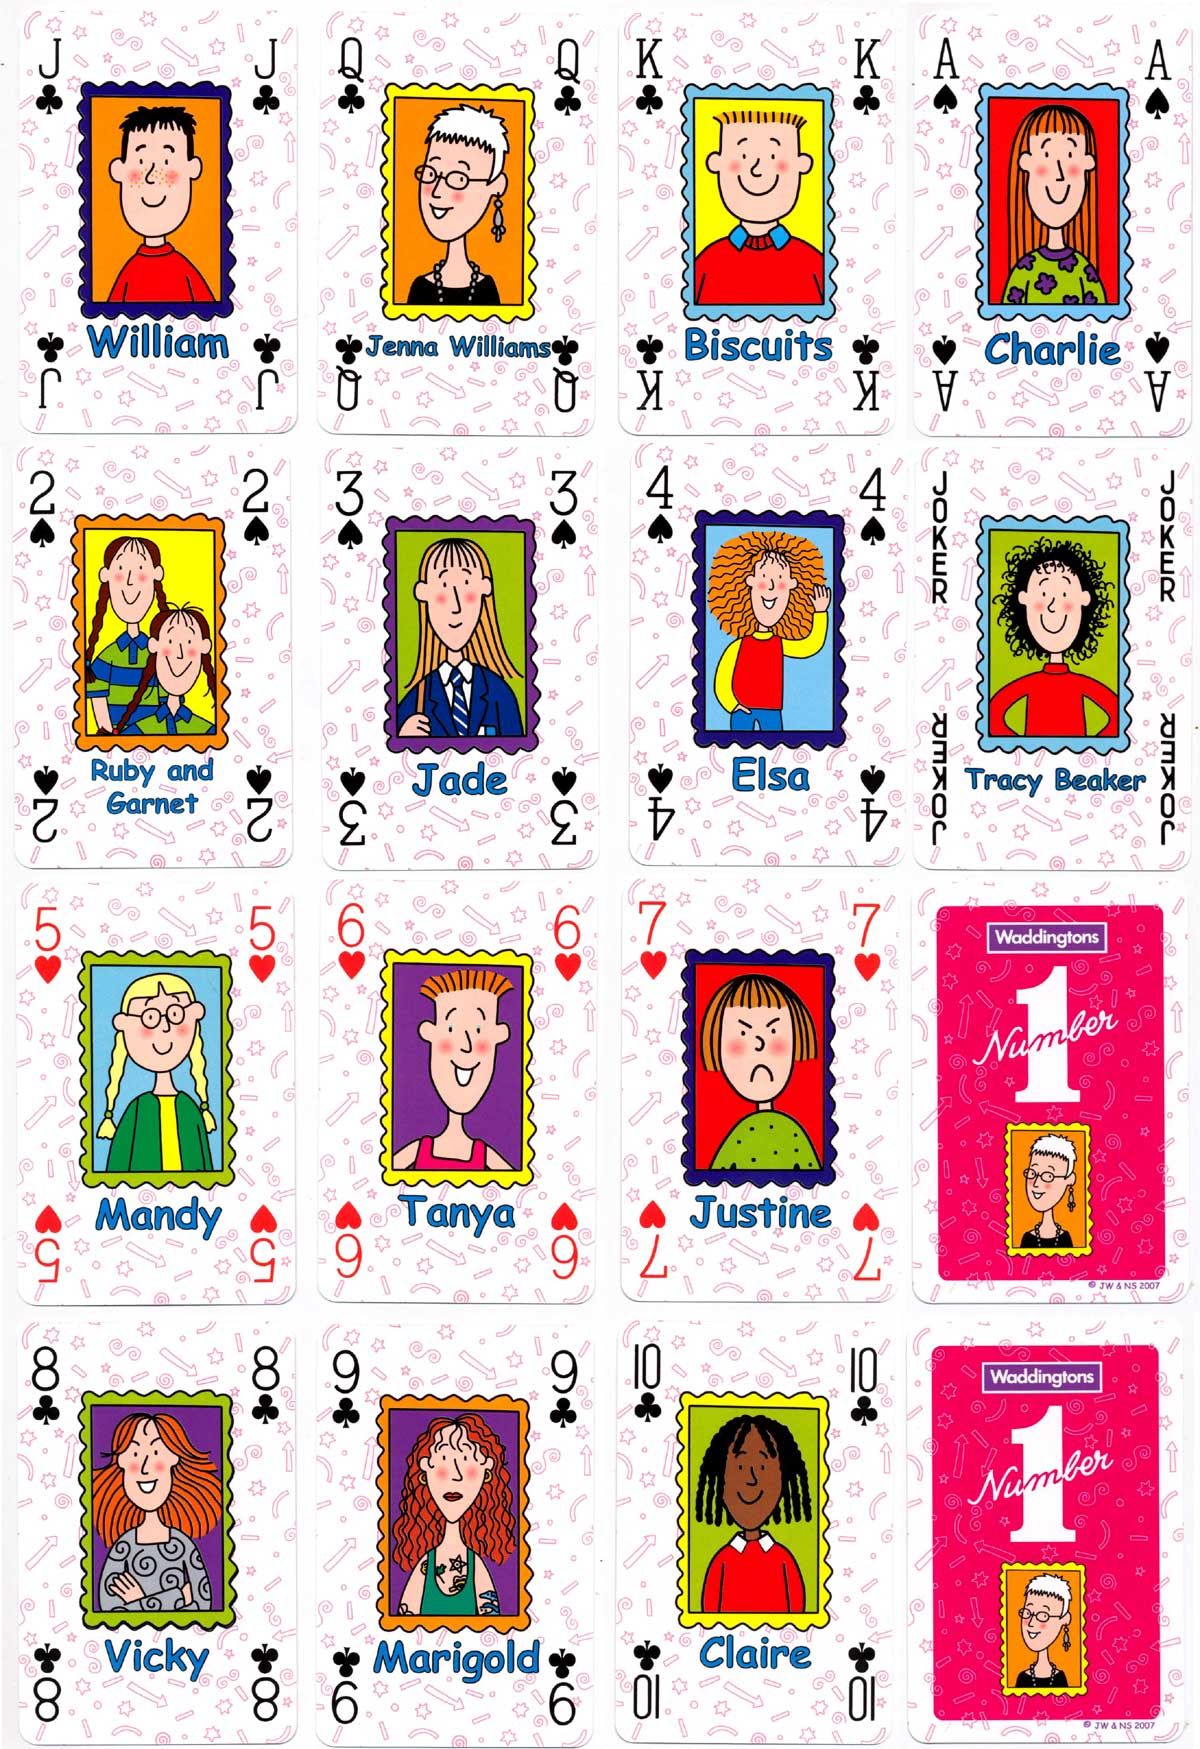 """Jacqueline Wilson"" playing cards published by Winning Moves UK Ltd, © Jacqueline Wilson & Nick Sharratt, 2007"